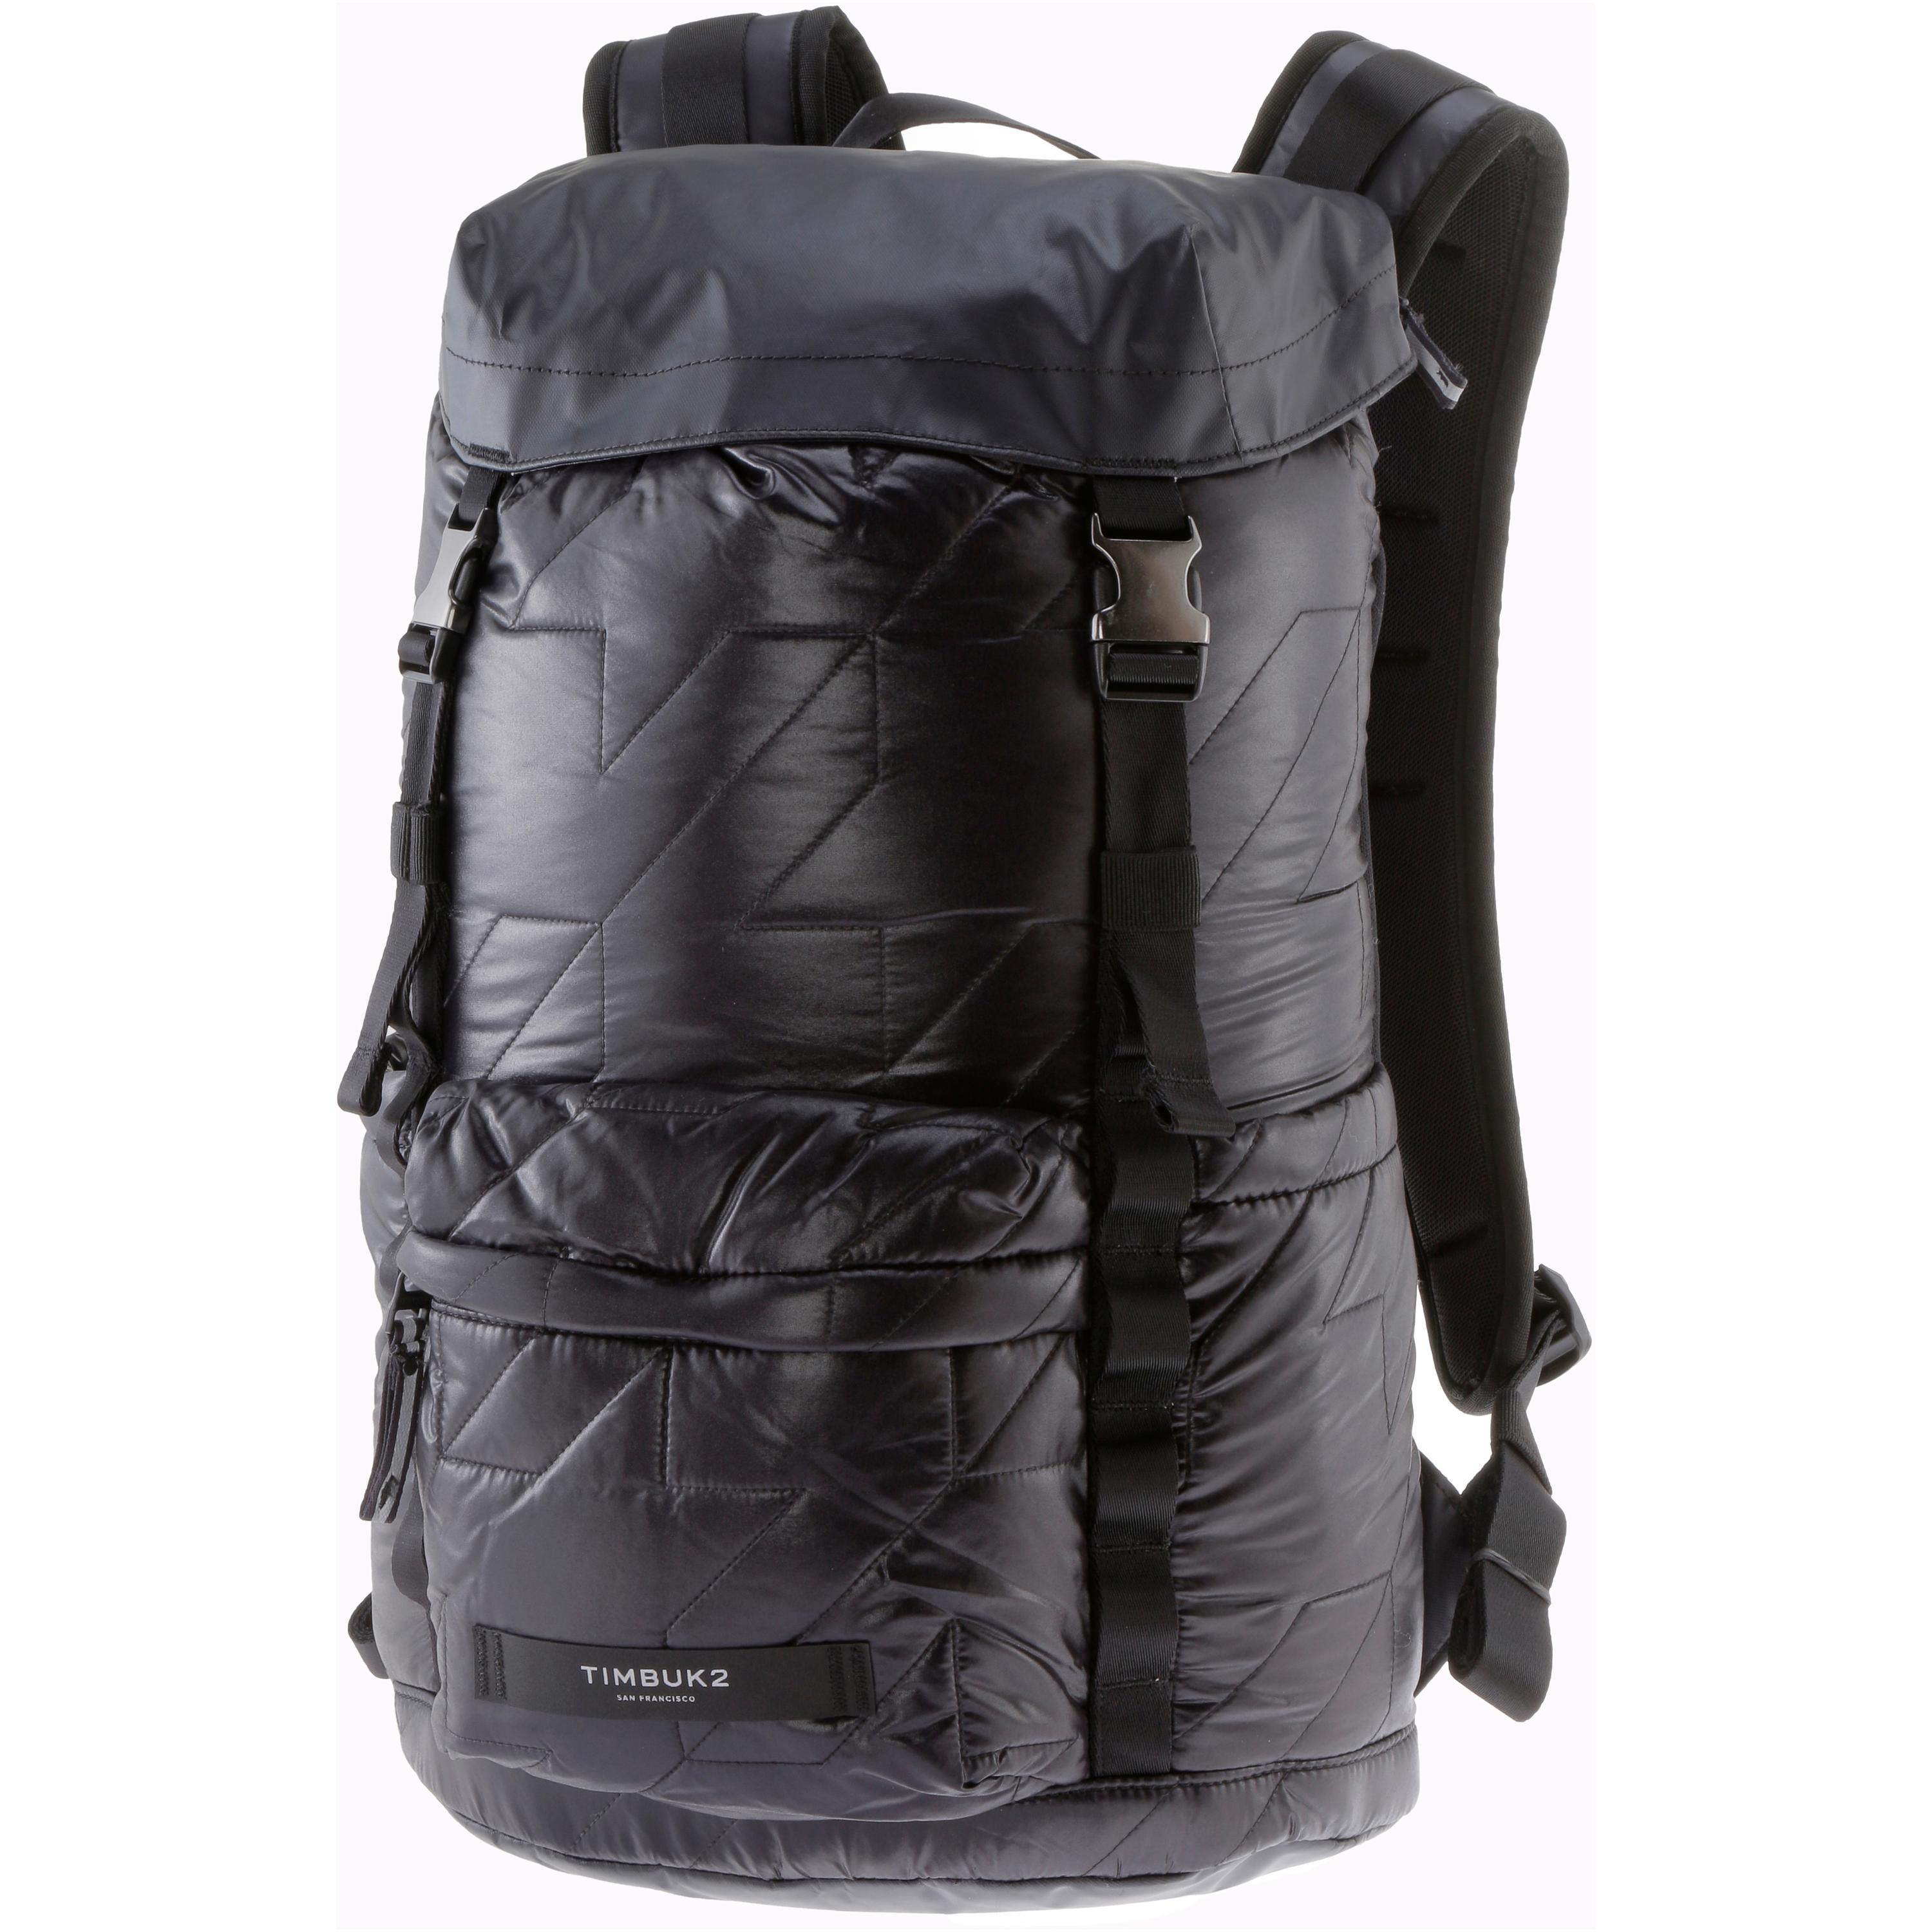 Timbuk2 Launch Daypack